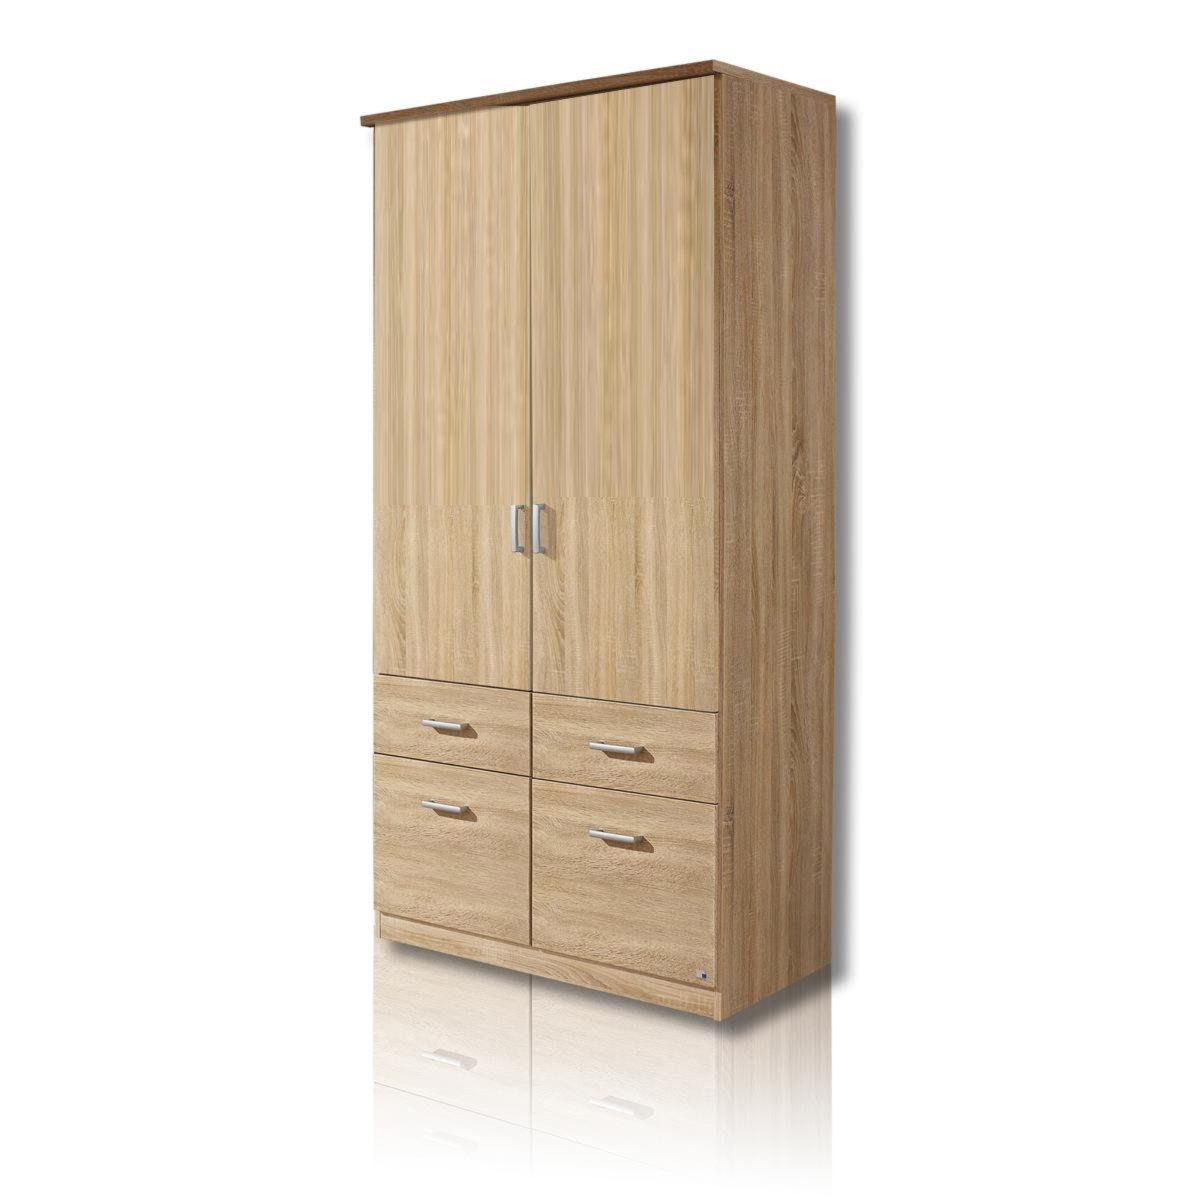 kleiderschrank bremen sonoma eiche 91 cm breit 4 schubk sten dreht renschr nke. Black Bedroom Furniture Sets. Home Design Ideas